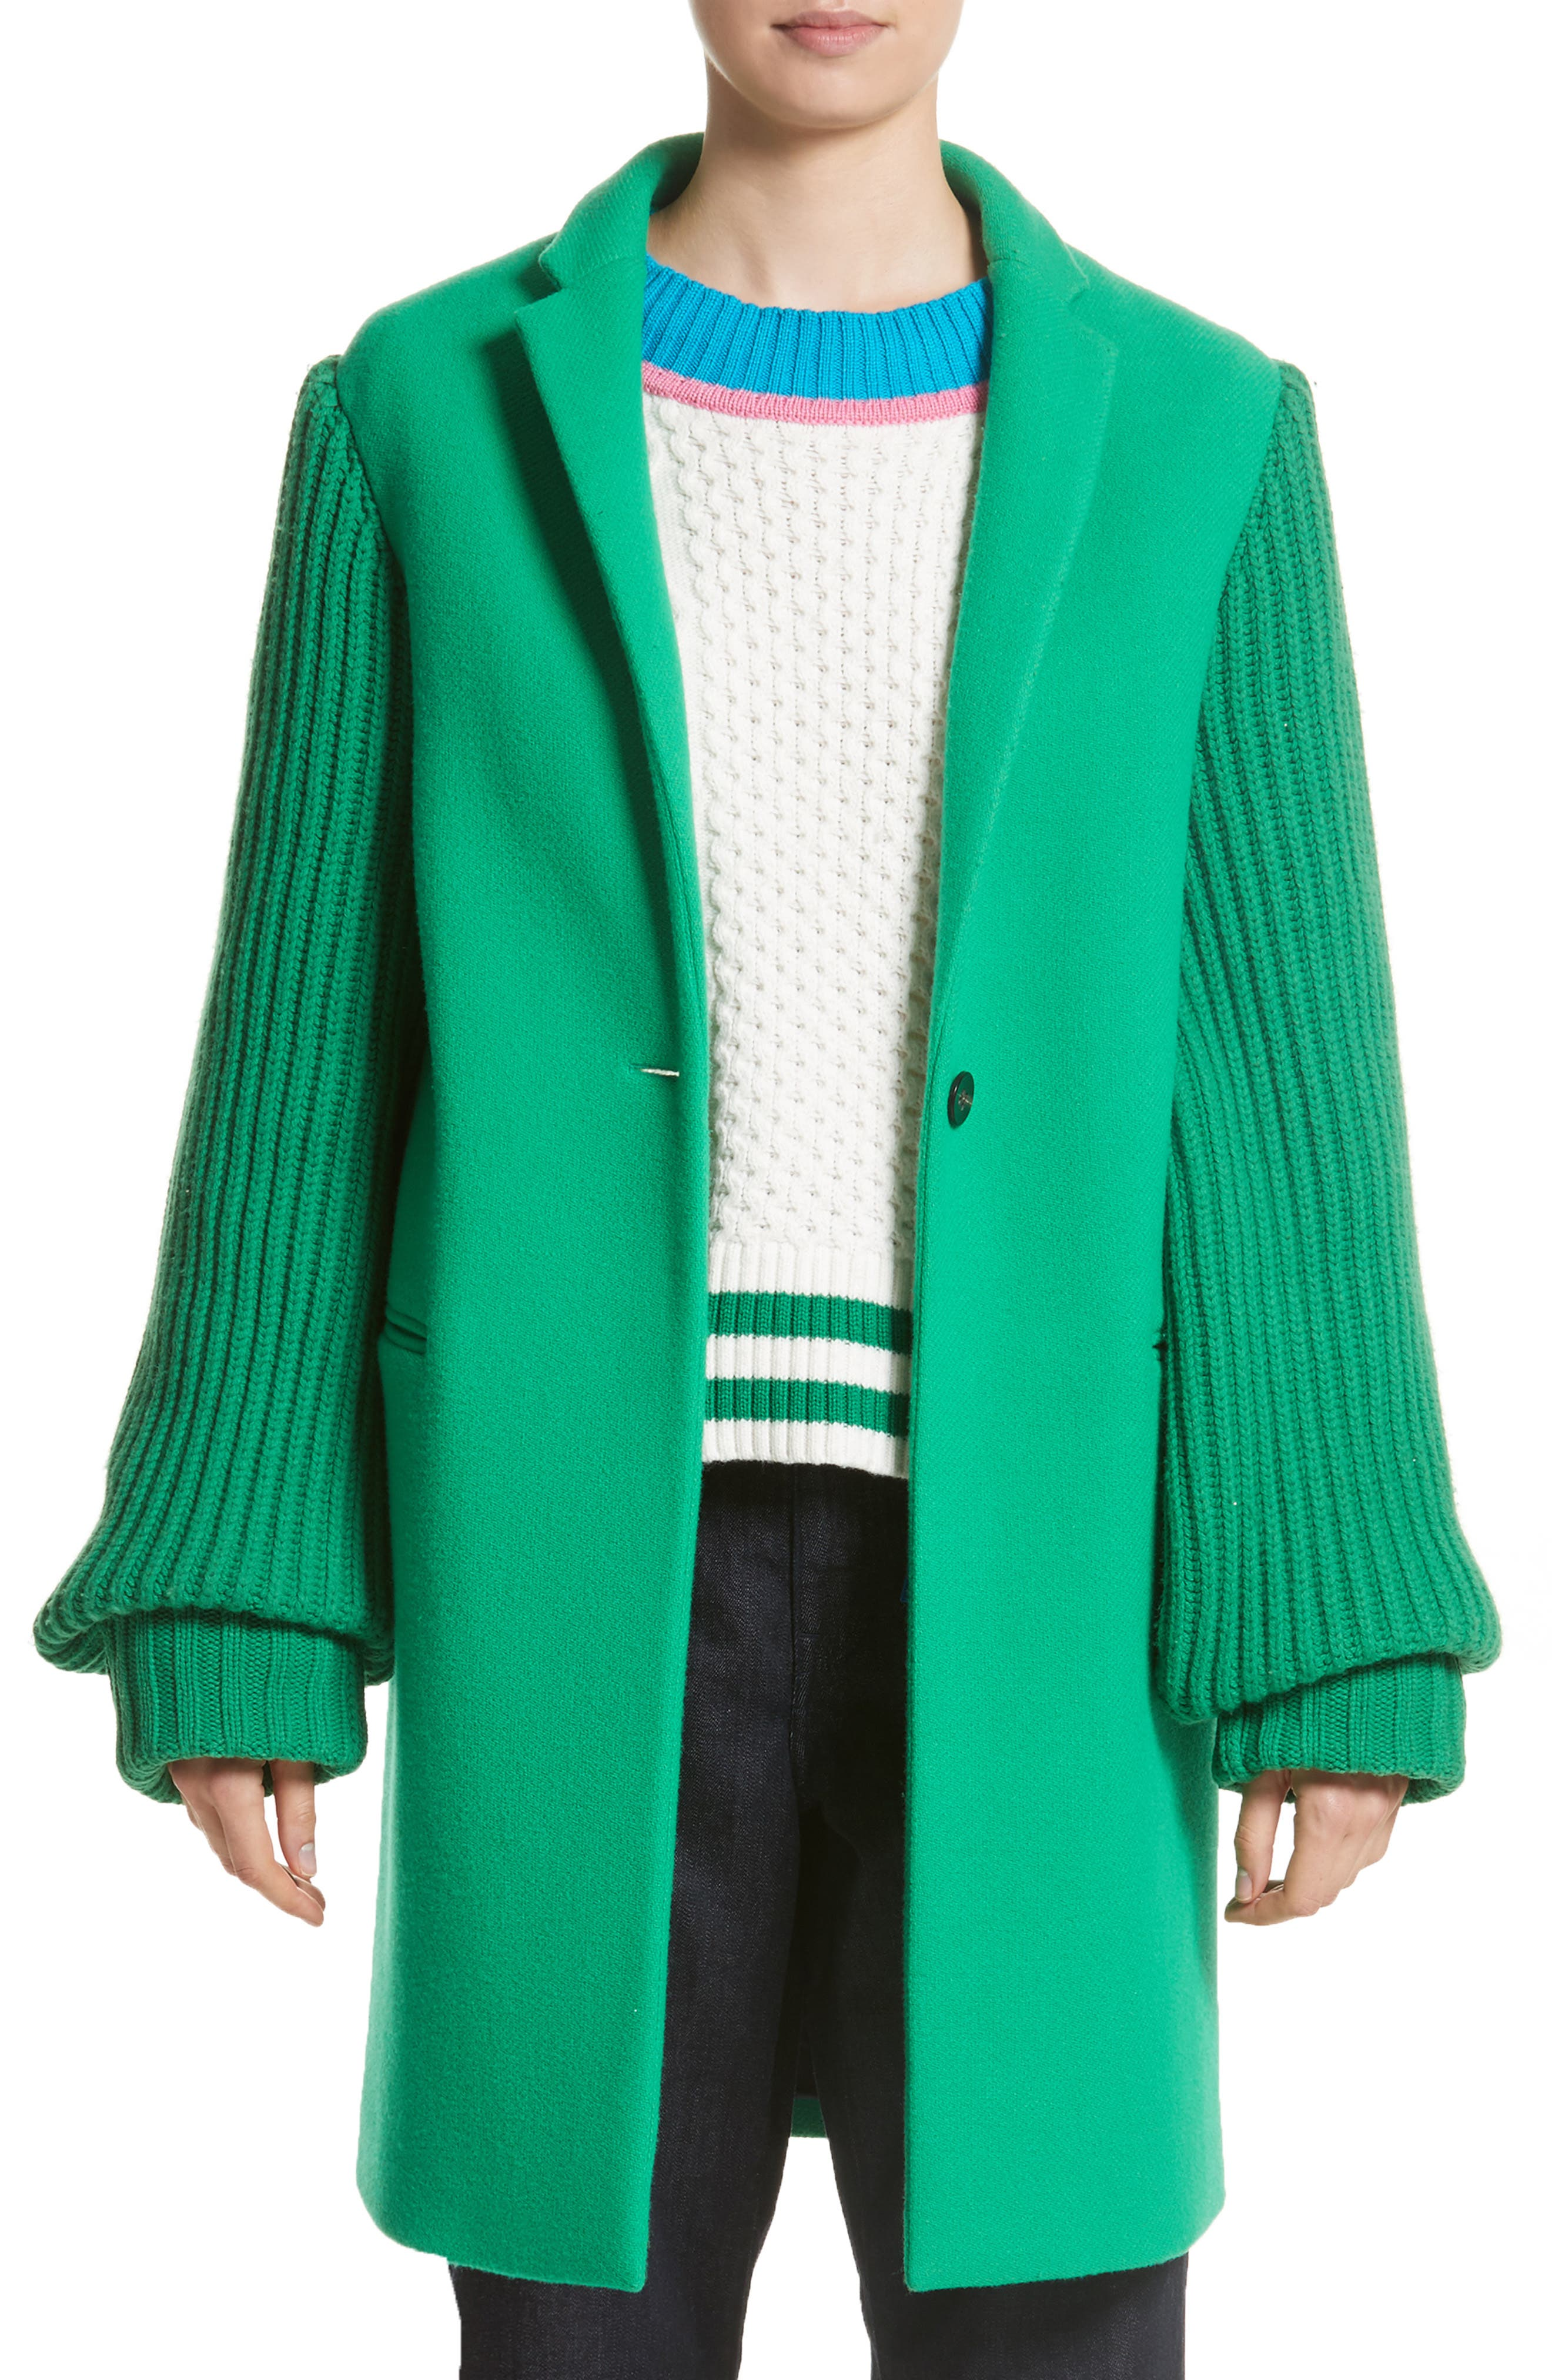 Main Image - Mira Mikati Ask Me Later Embroidered Knit Sleeve Coat